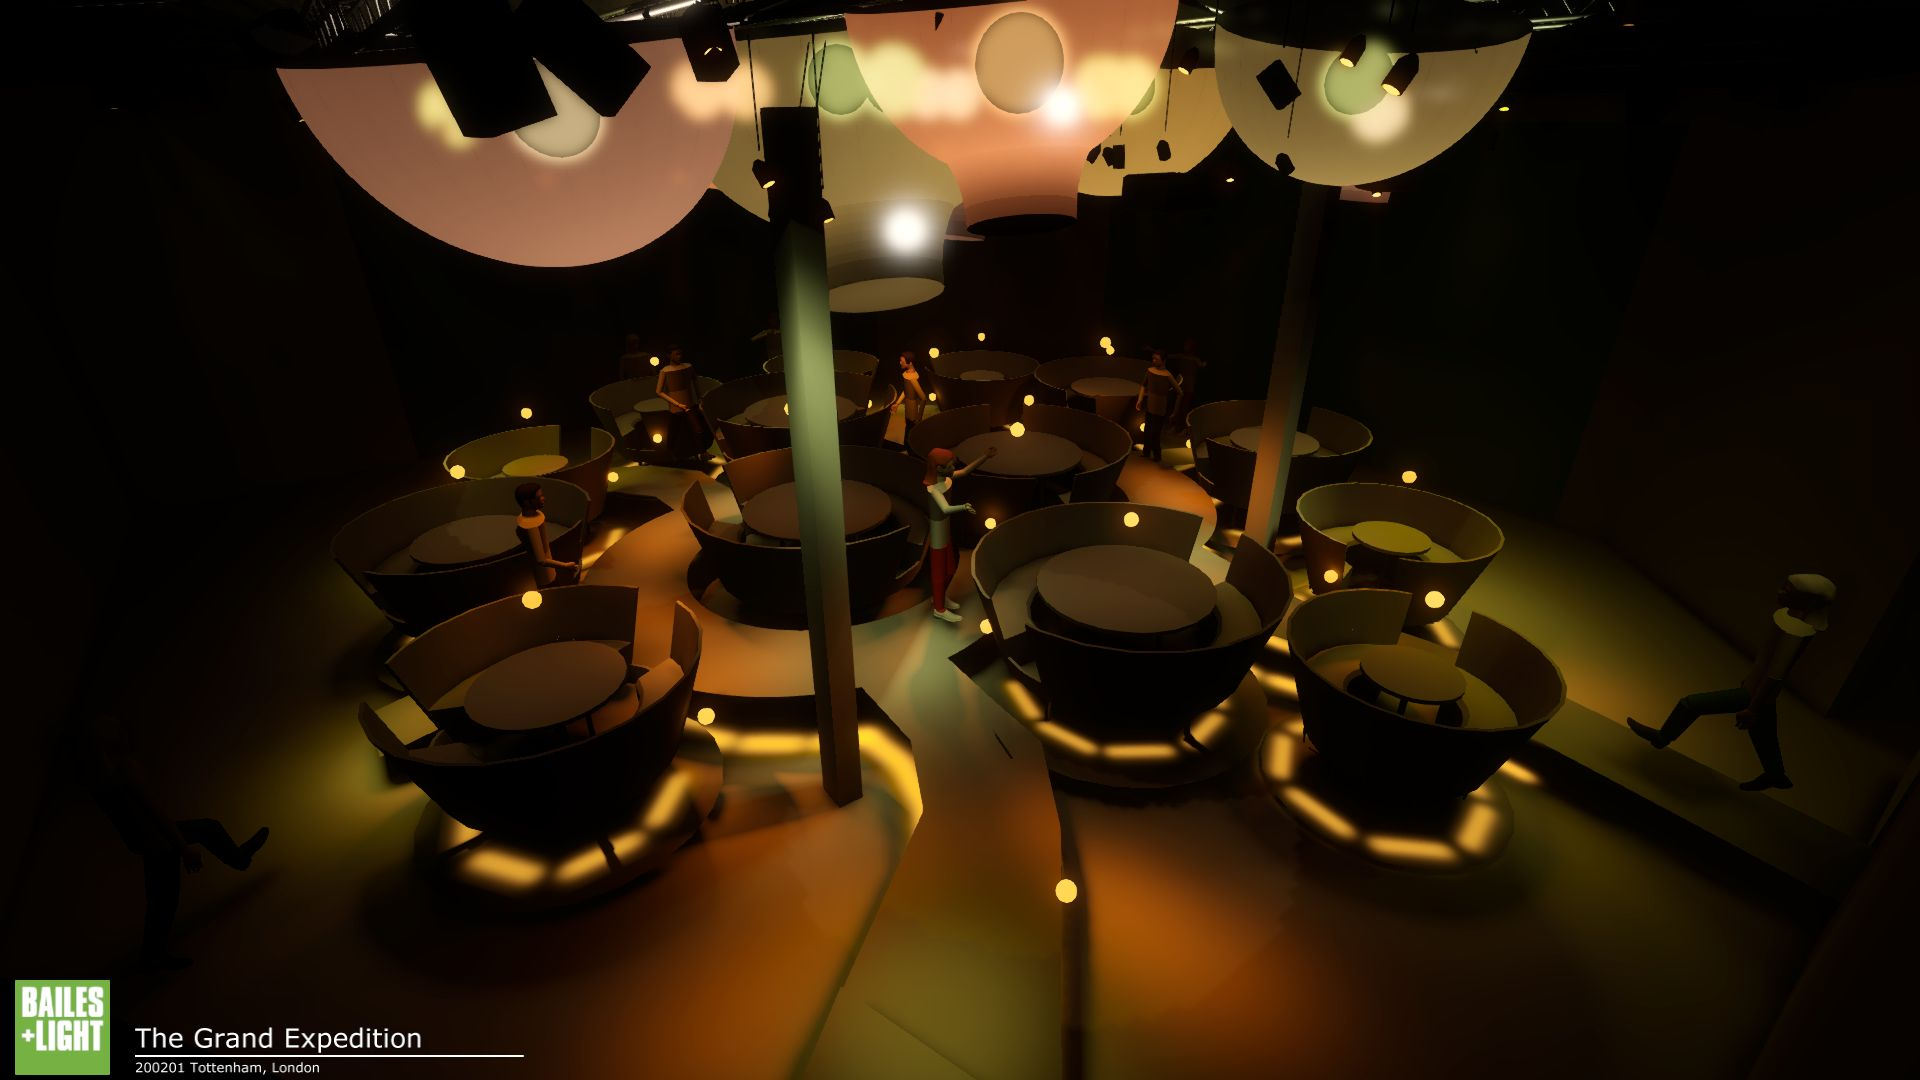 gingerline-grand-expedition-bailes-light-visual-render-3D